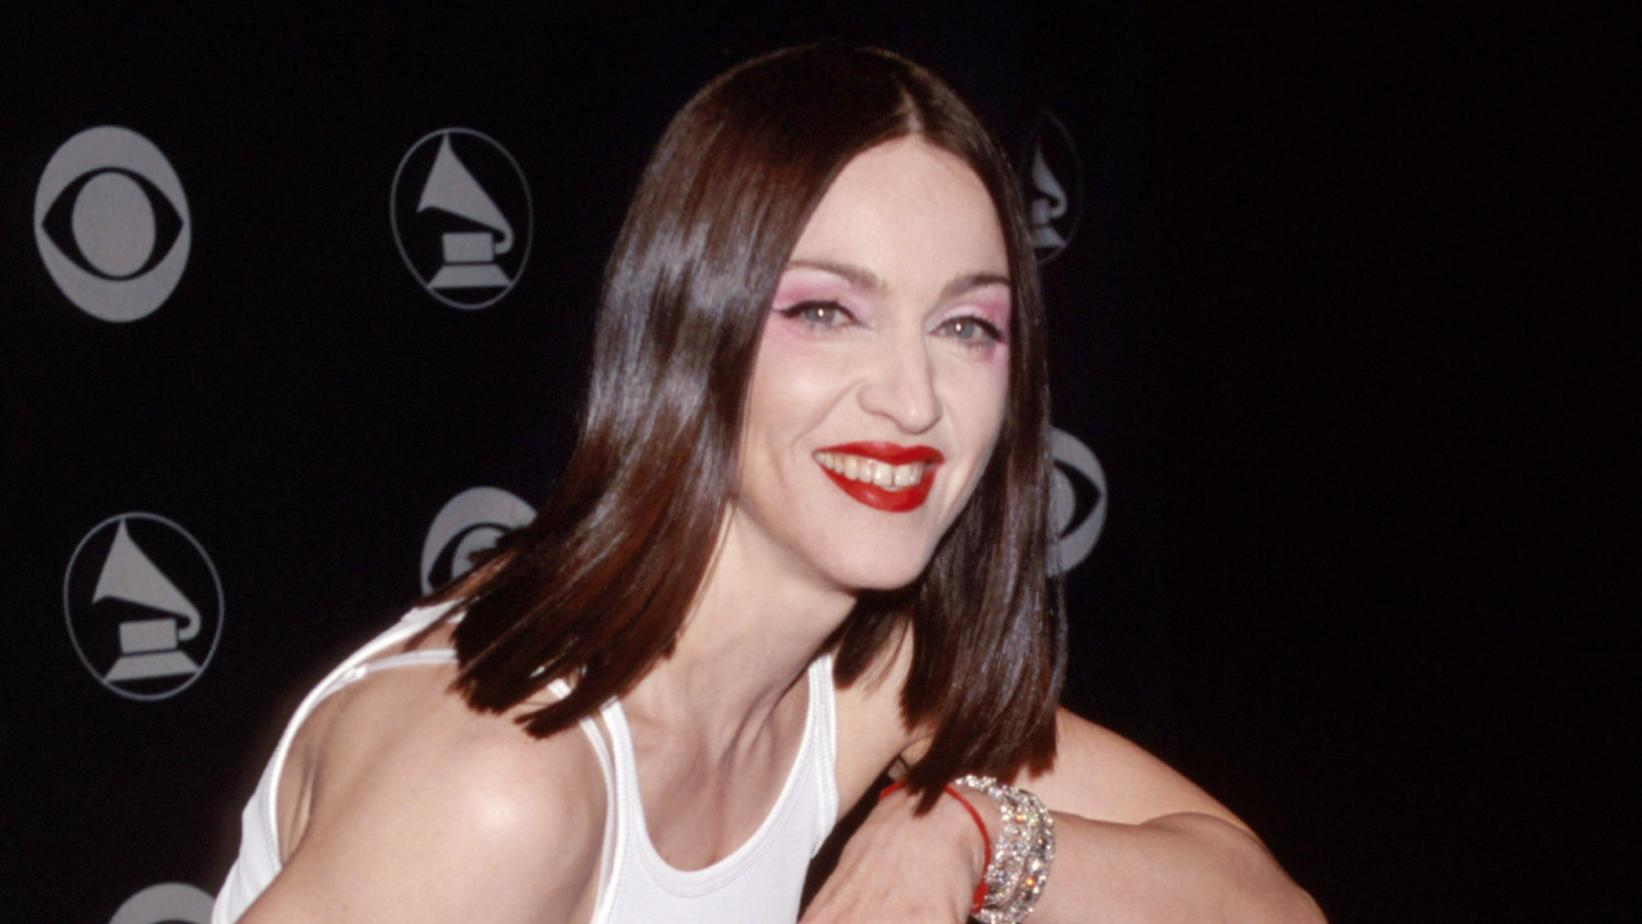 Madonna at the 41st GRAMMY Awards in 1999